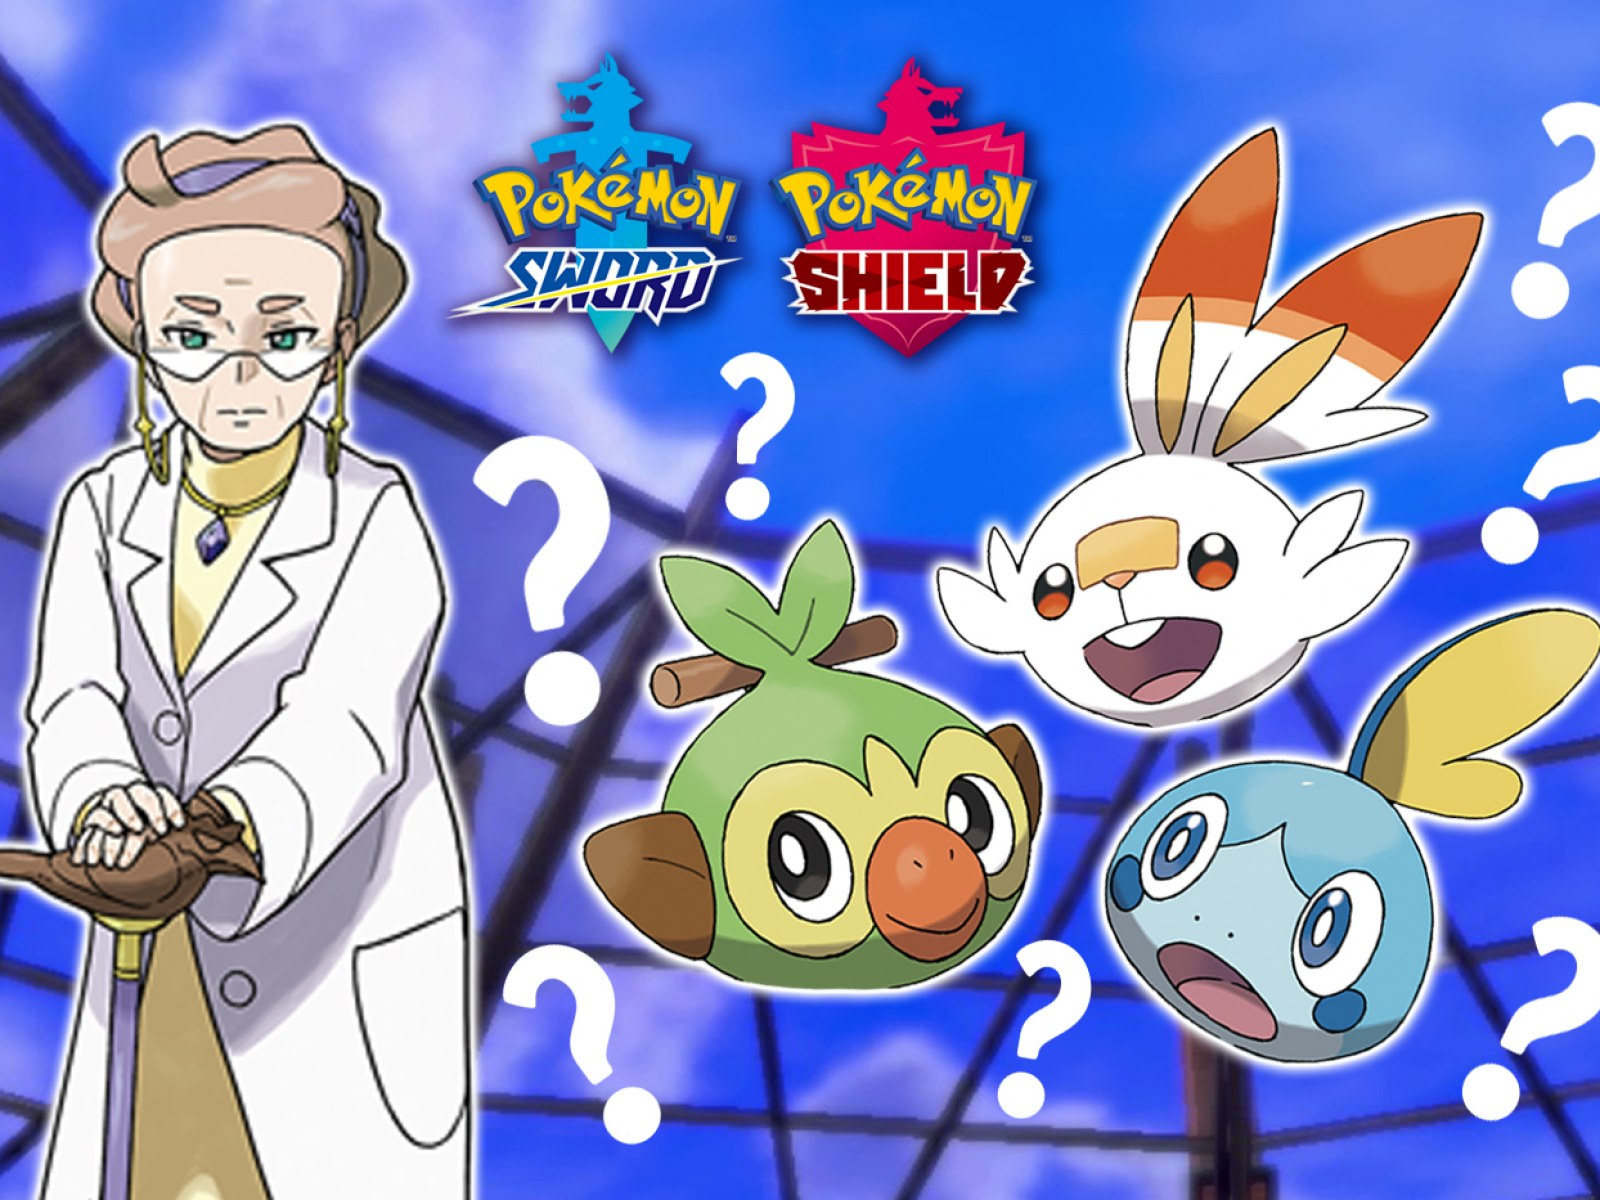 Pokemon sword starter evolutions